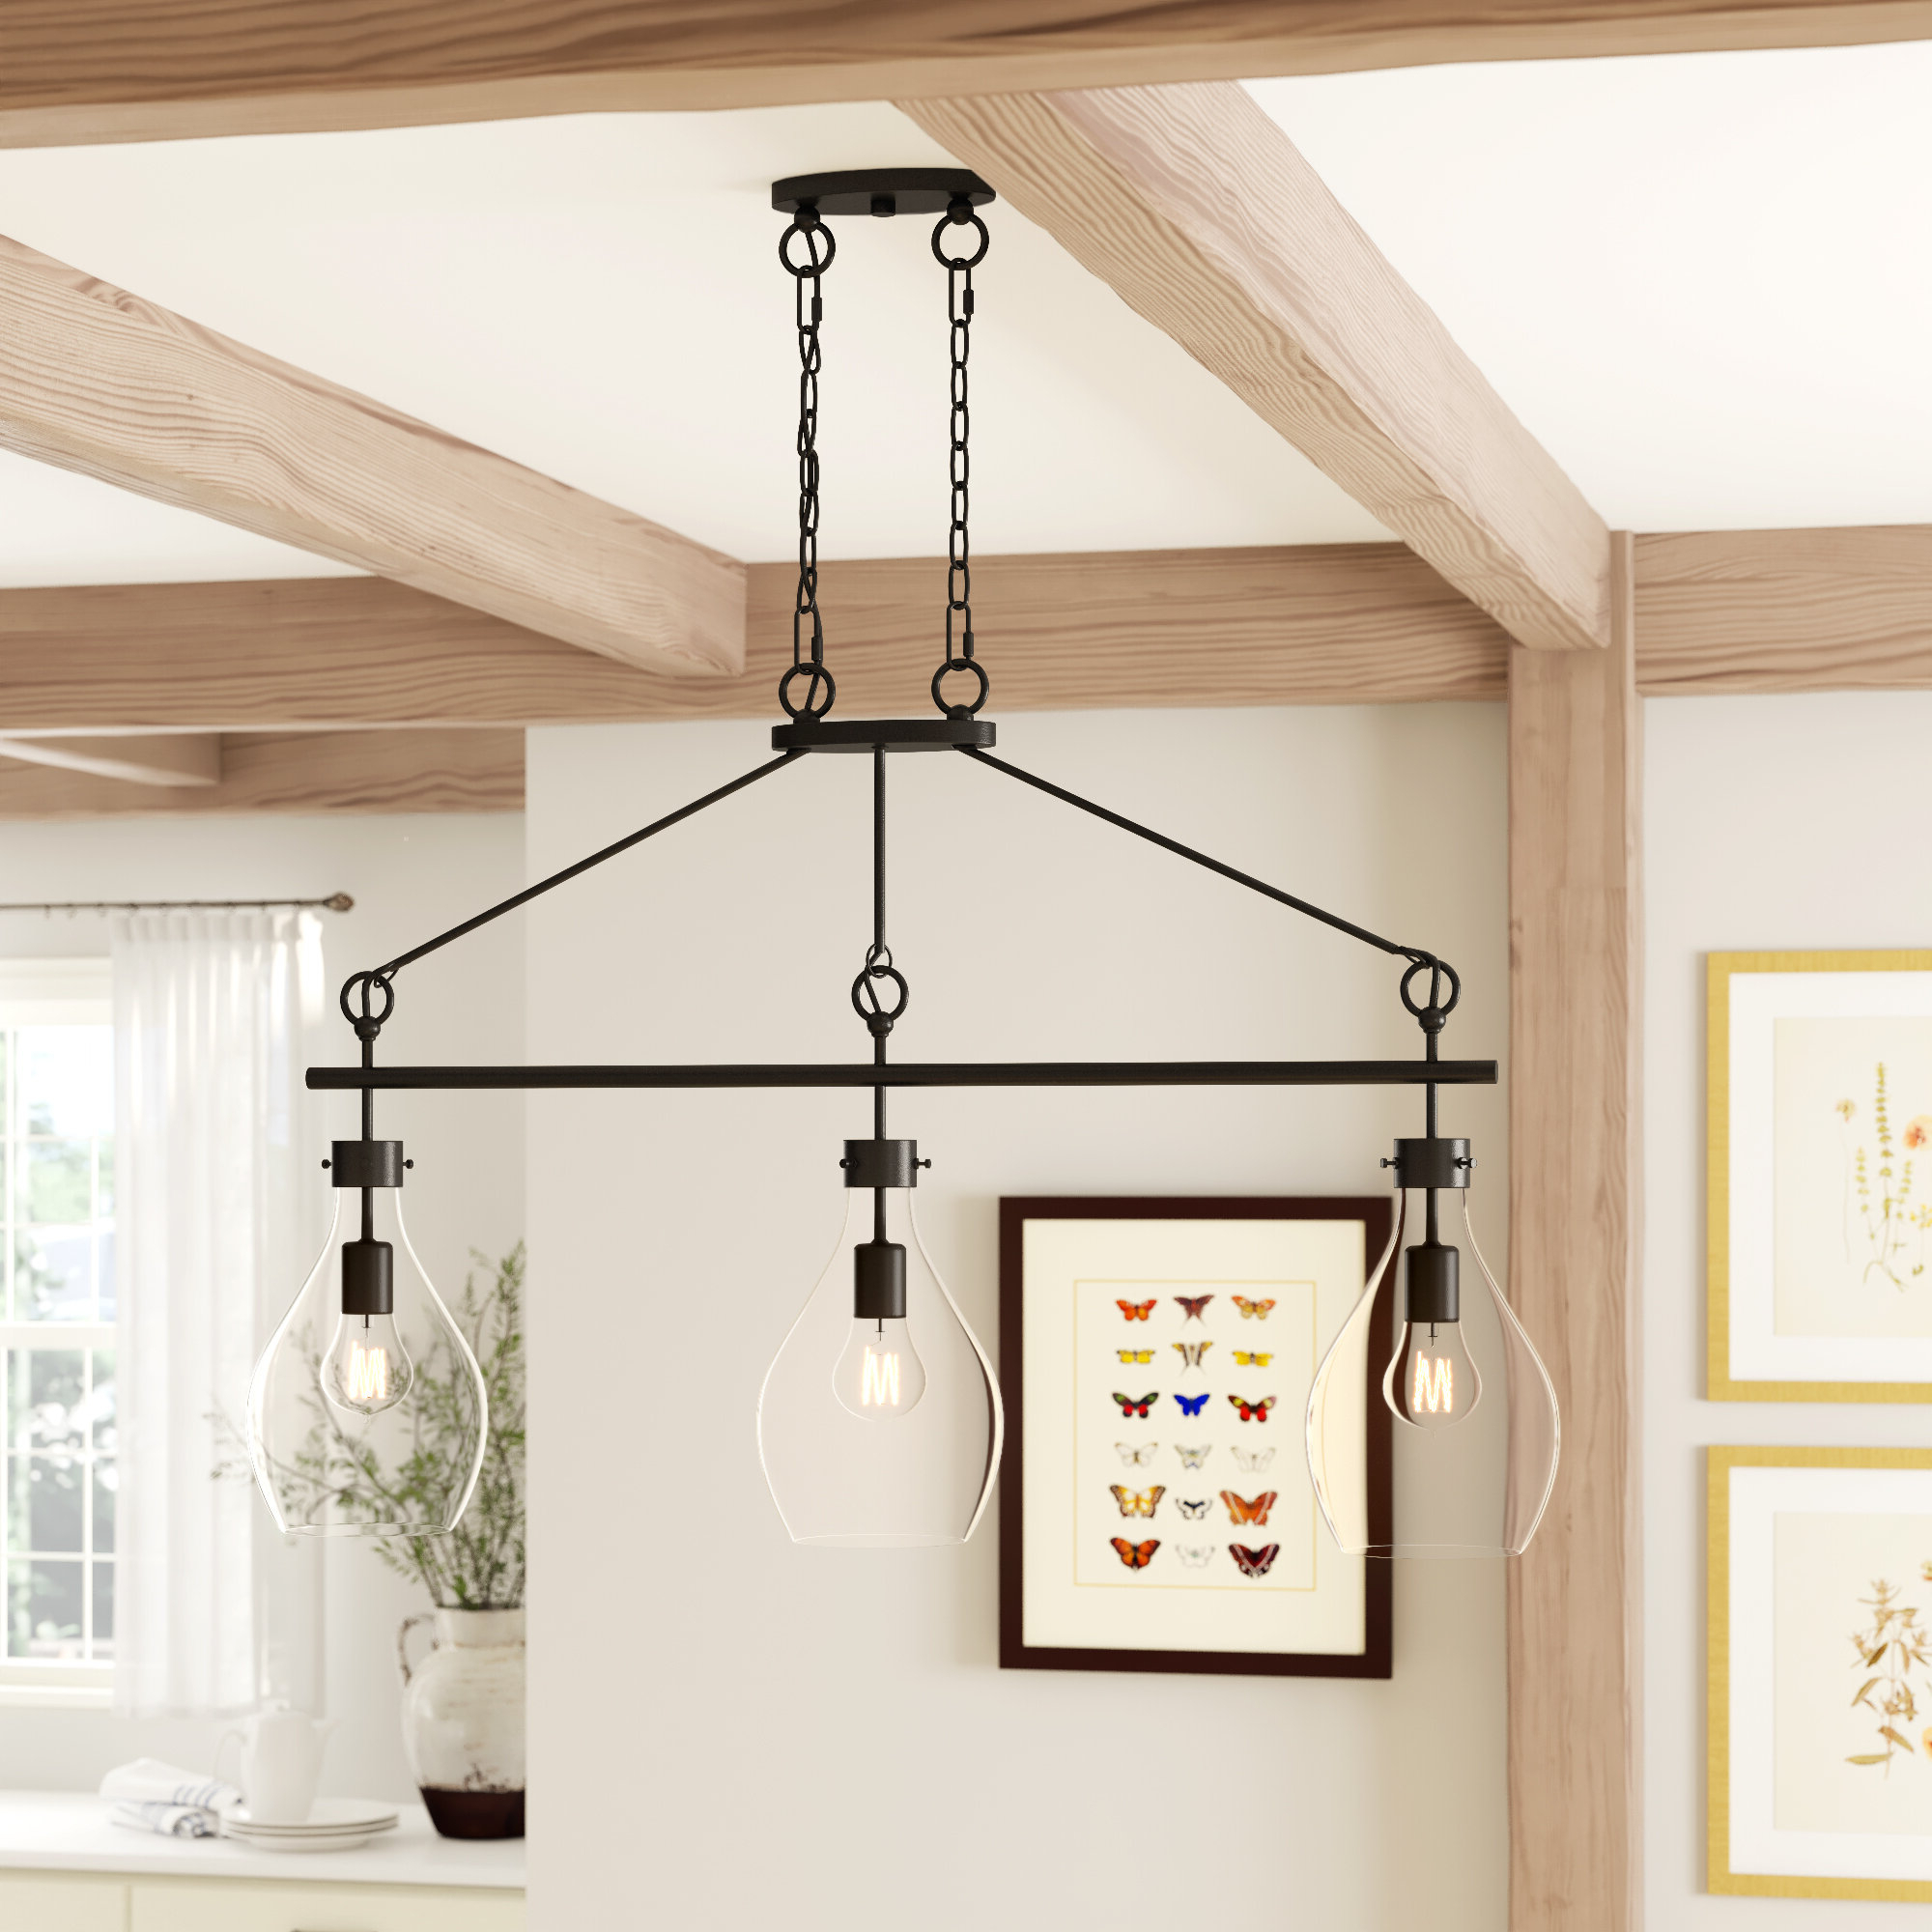 Ariel 2 Light Kitchen Island Dome Pendants With Well Known Nan 3 Light Kitchen Island Teardrop Pendant (View 15 of 20)